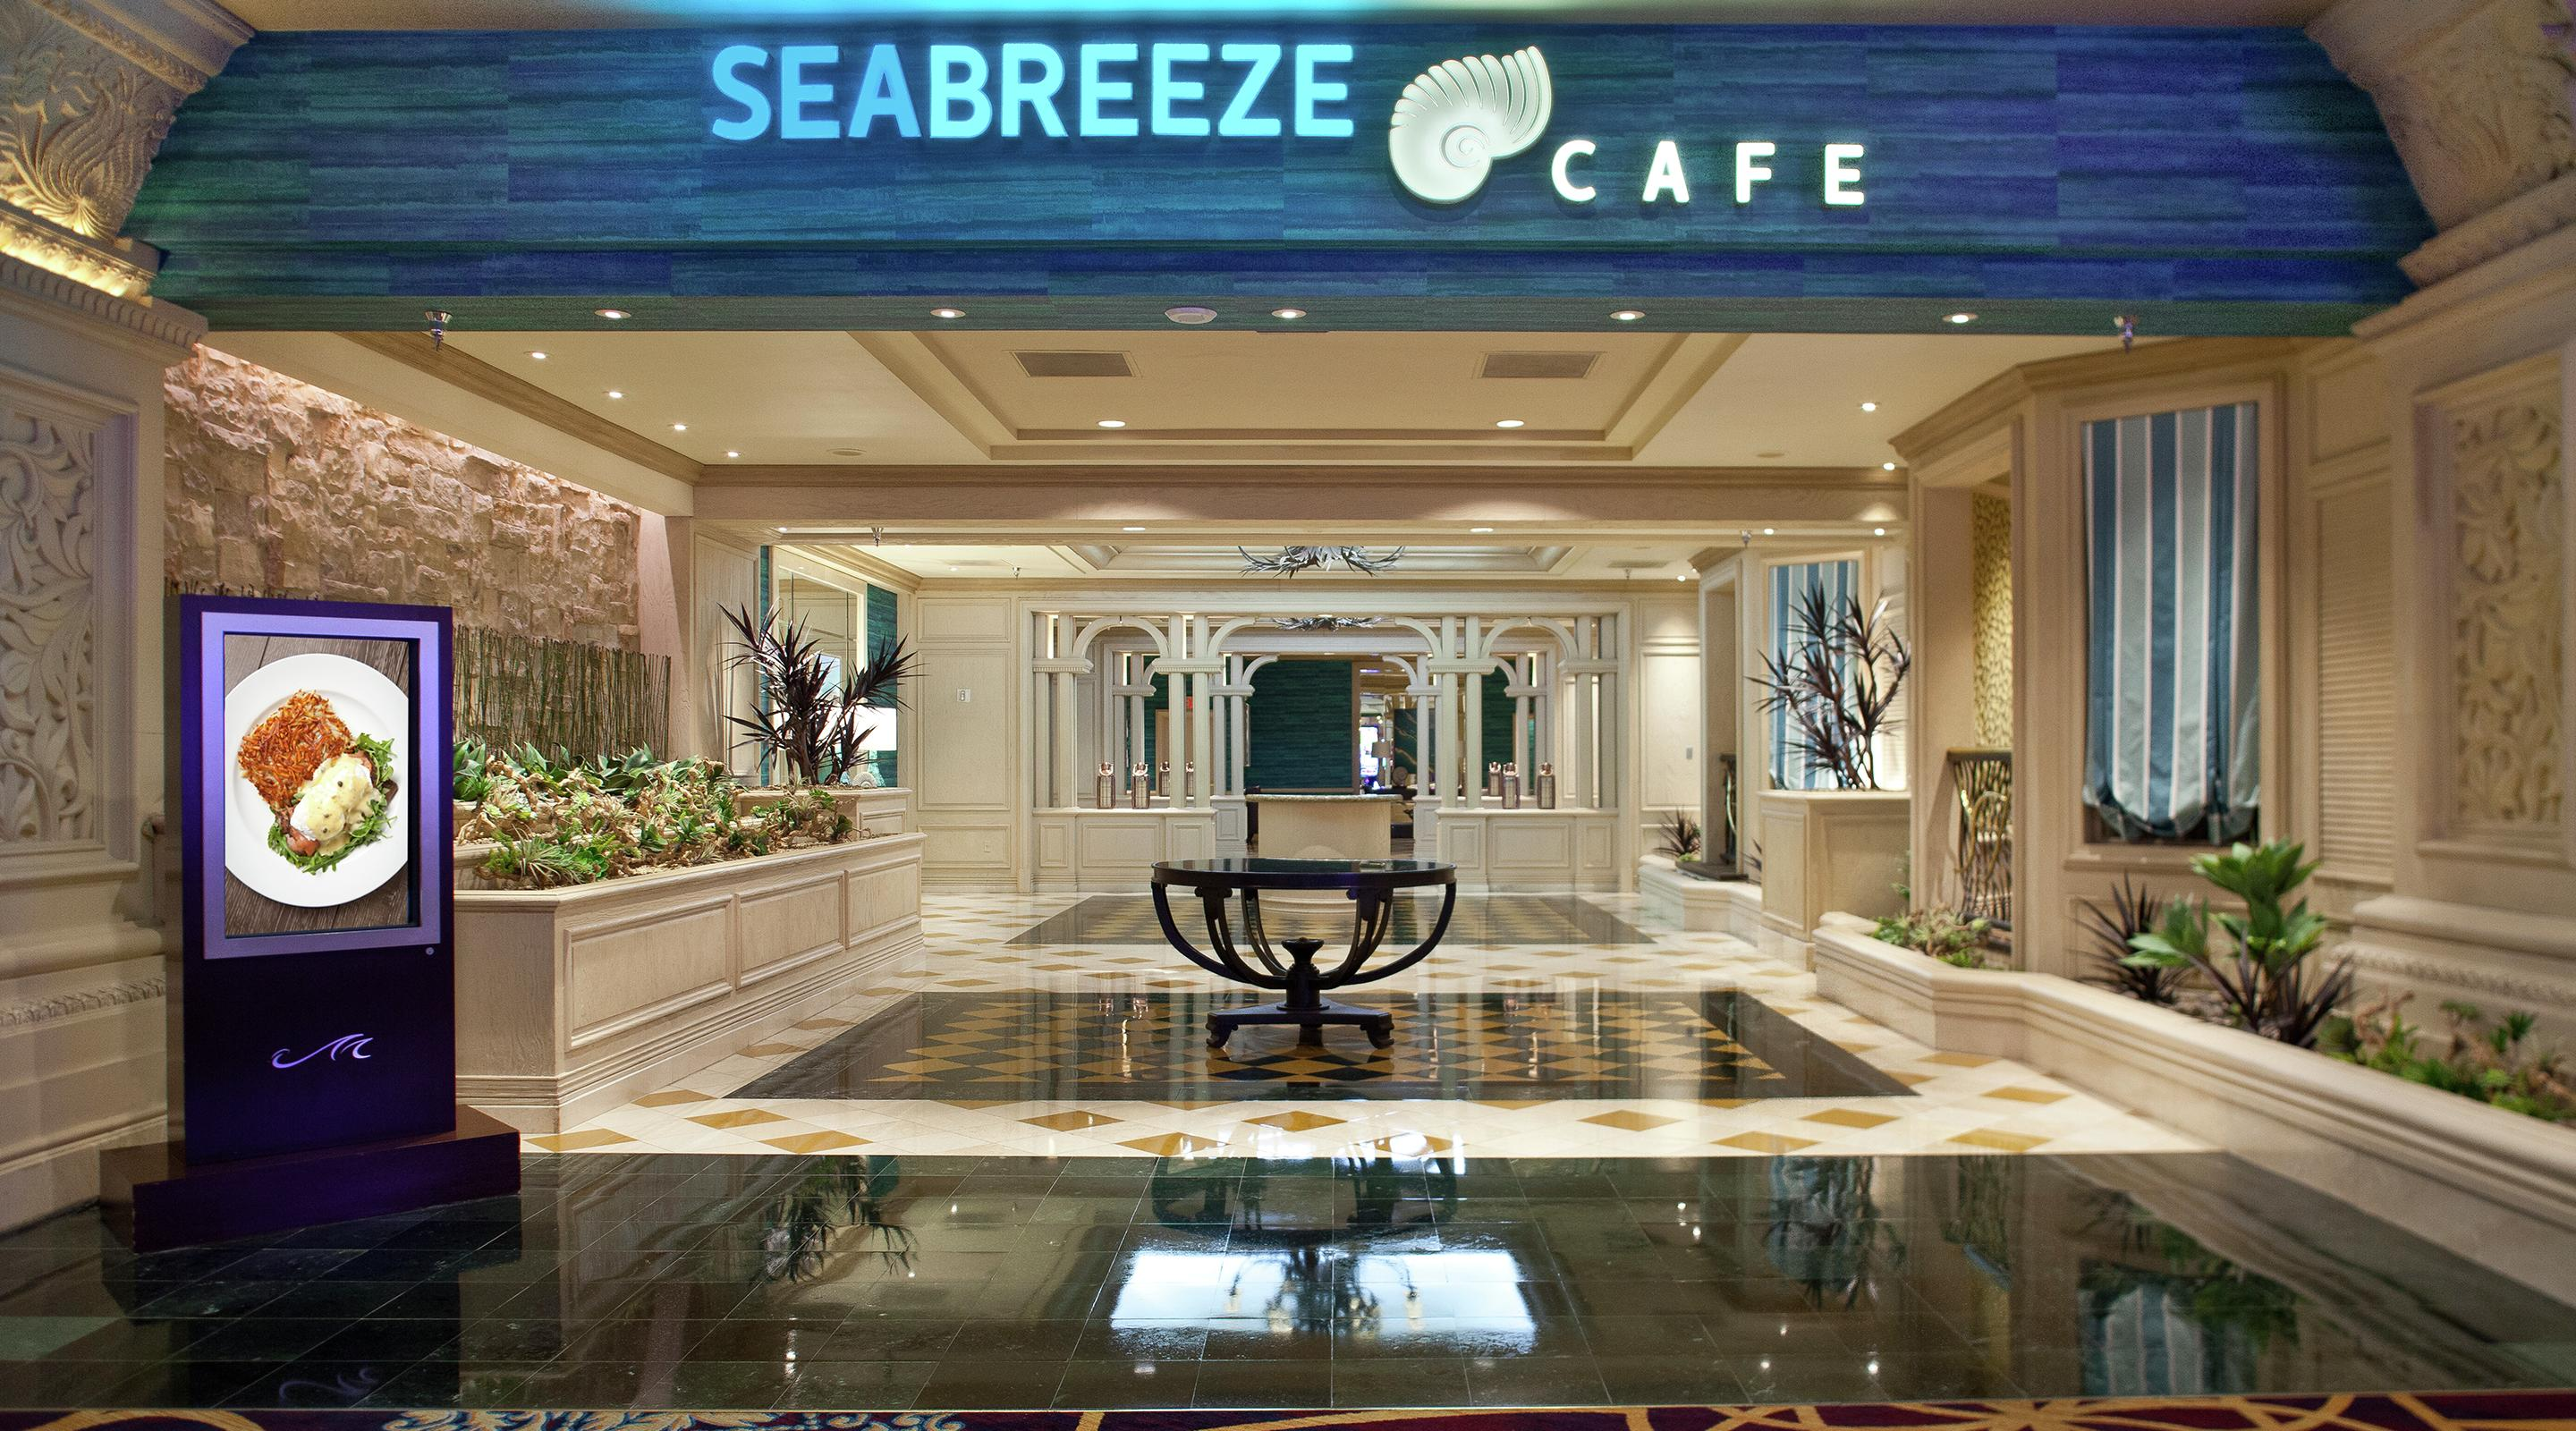 Stop By Seabreeze Cafe at Mandalay Bay.